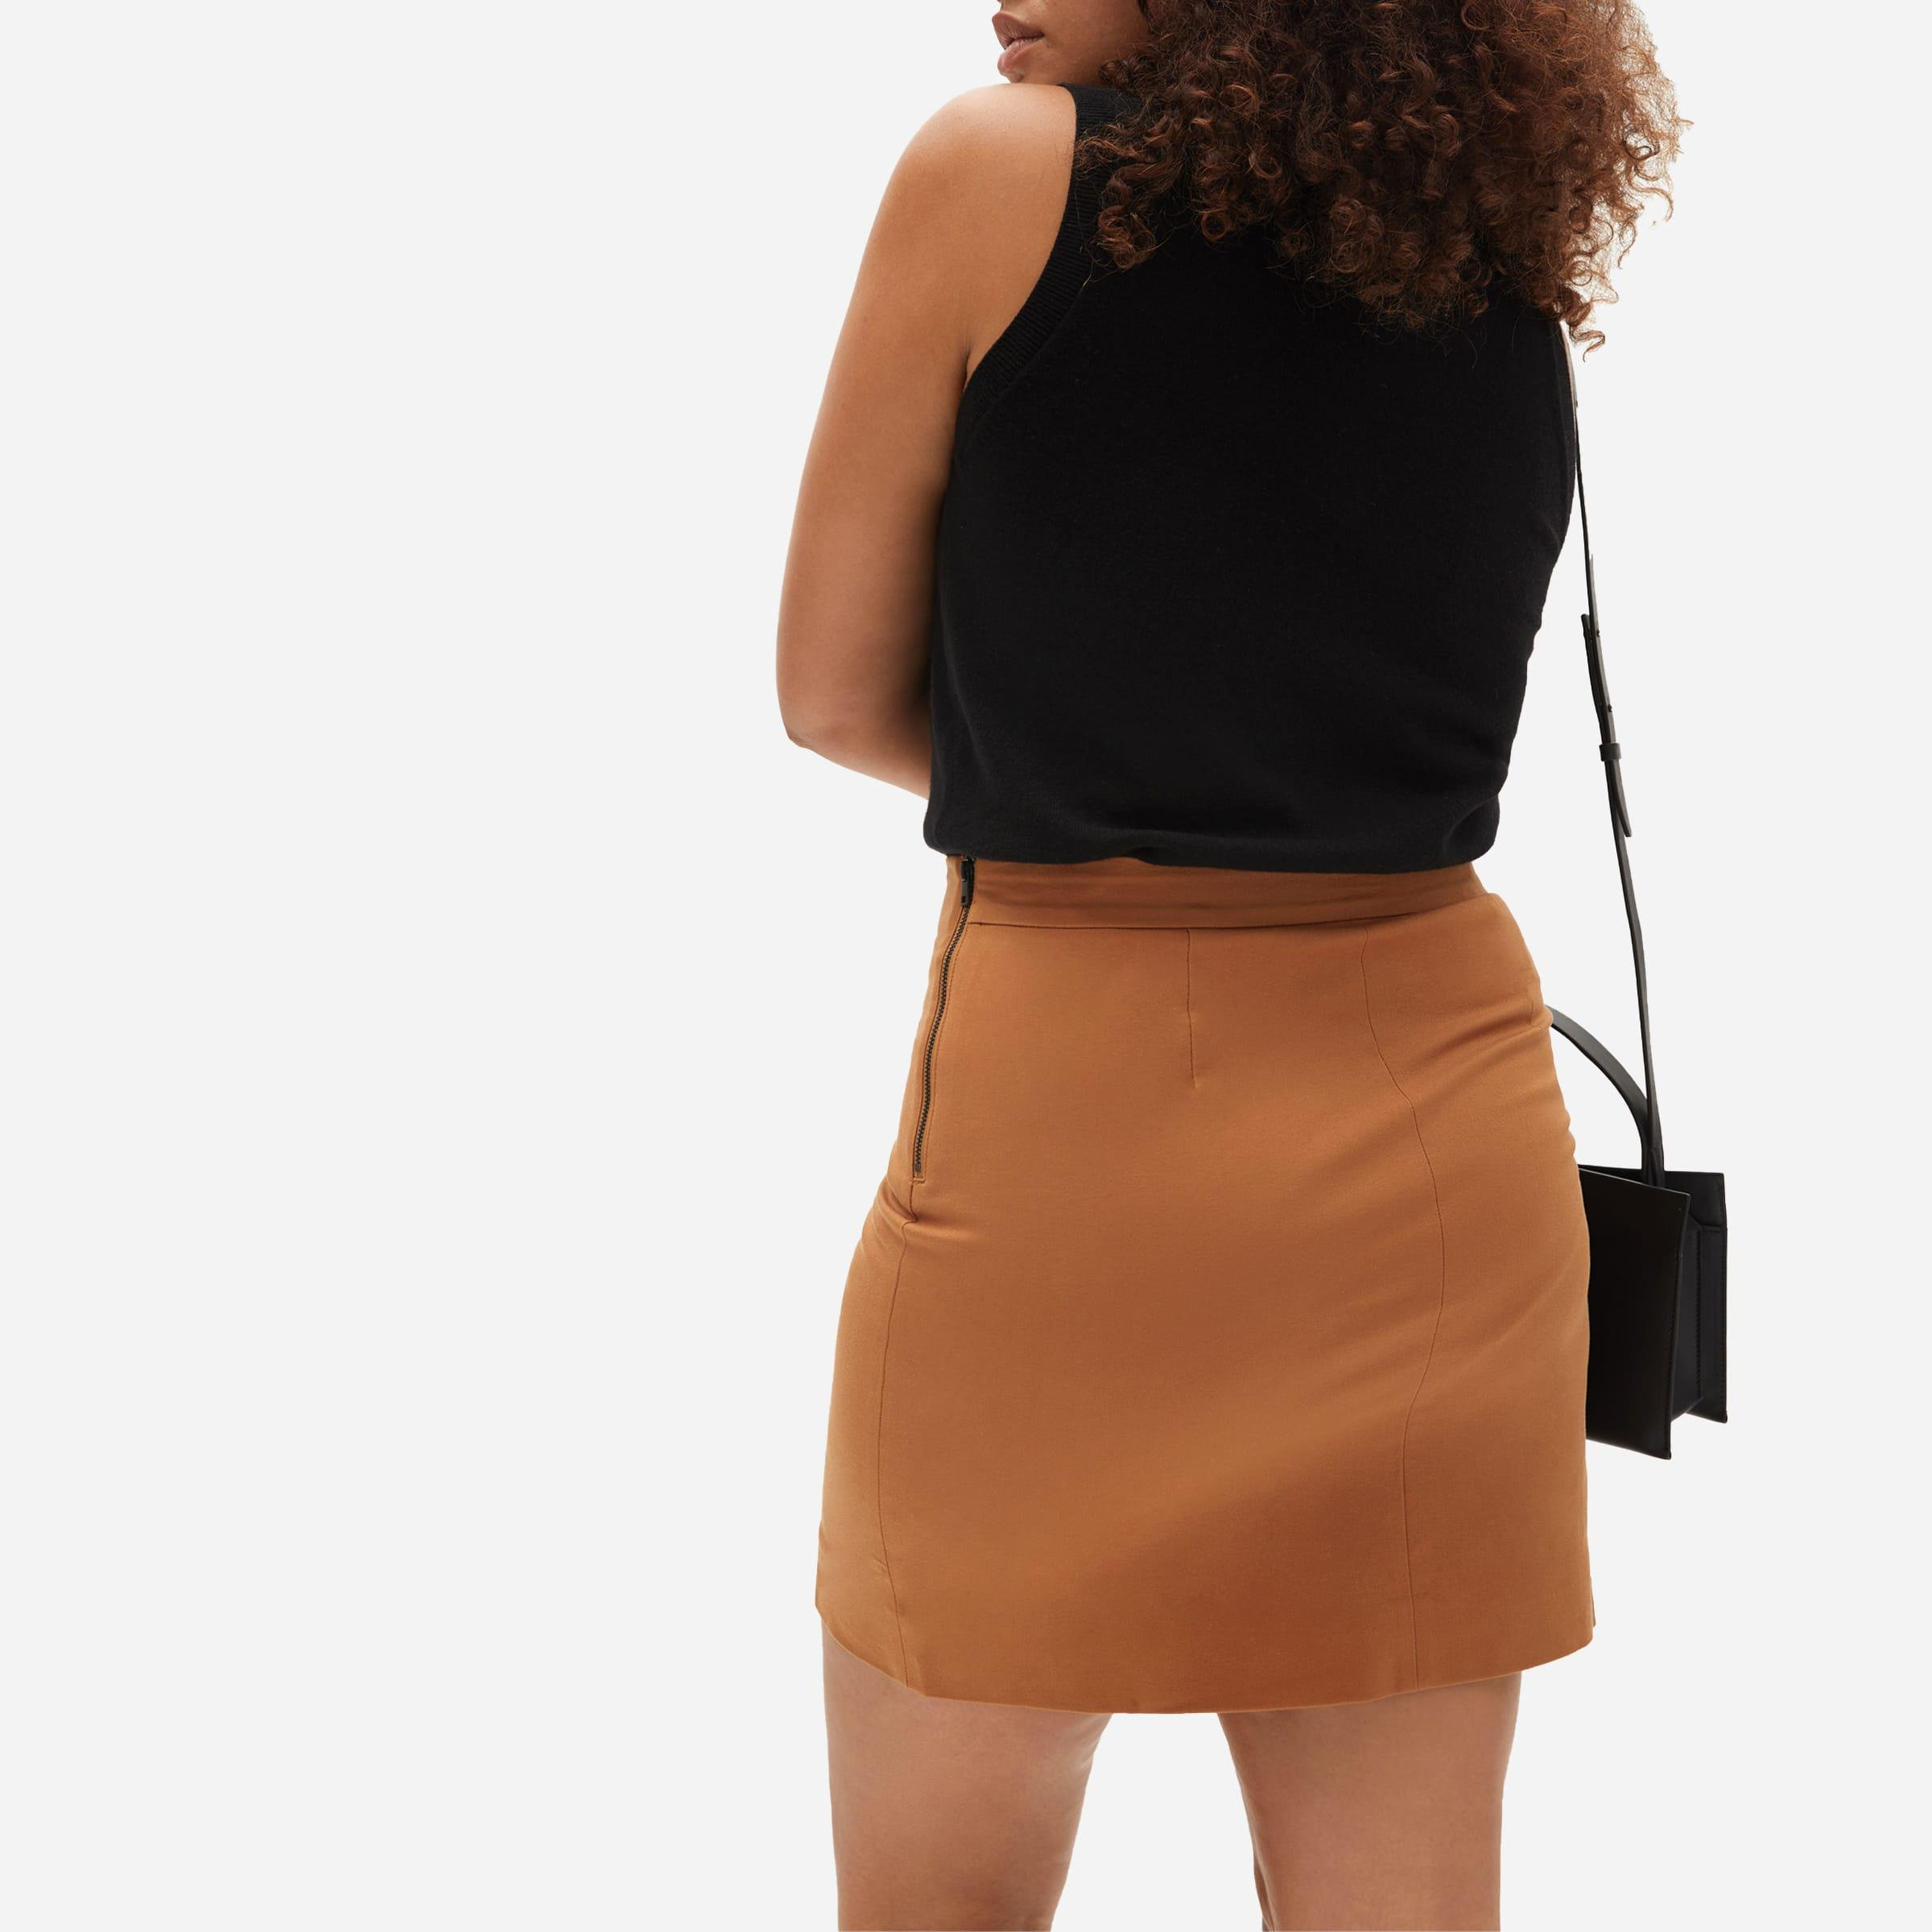 The Almost-Mini Skirt 1